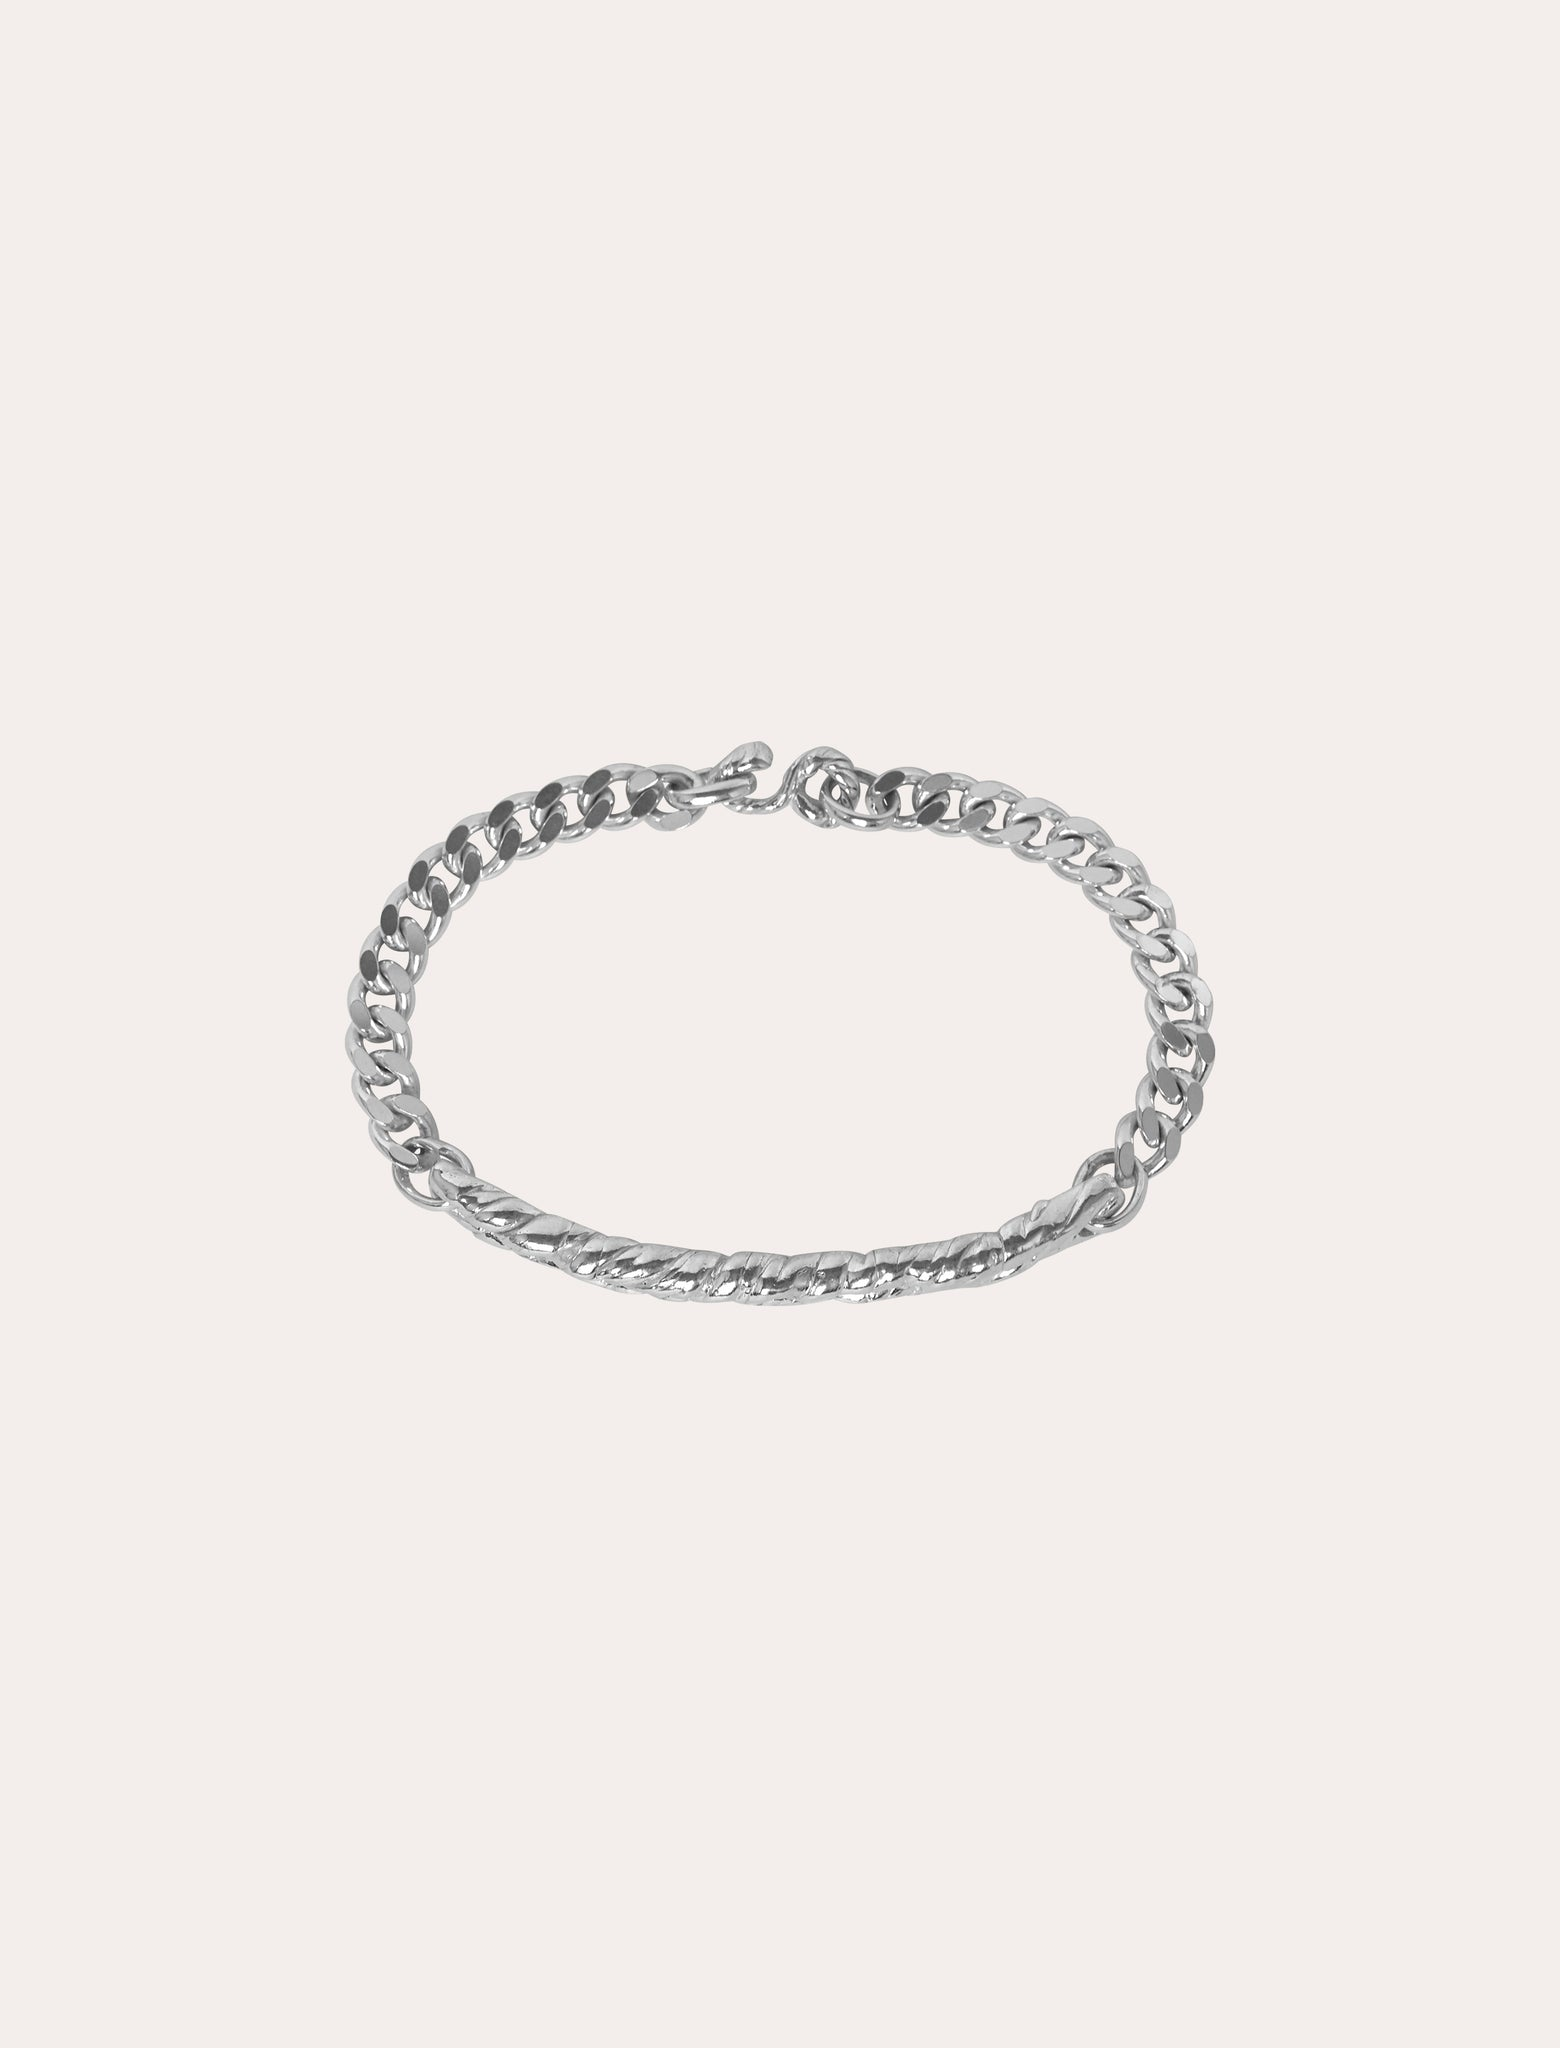 ANOTHER ASPECT x Corali, Kusari Bracelet Sterling Silver